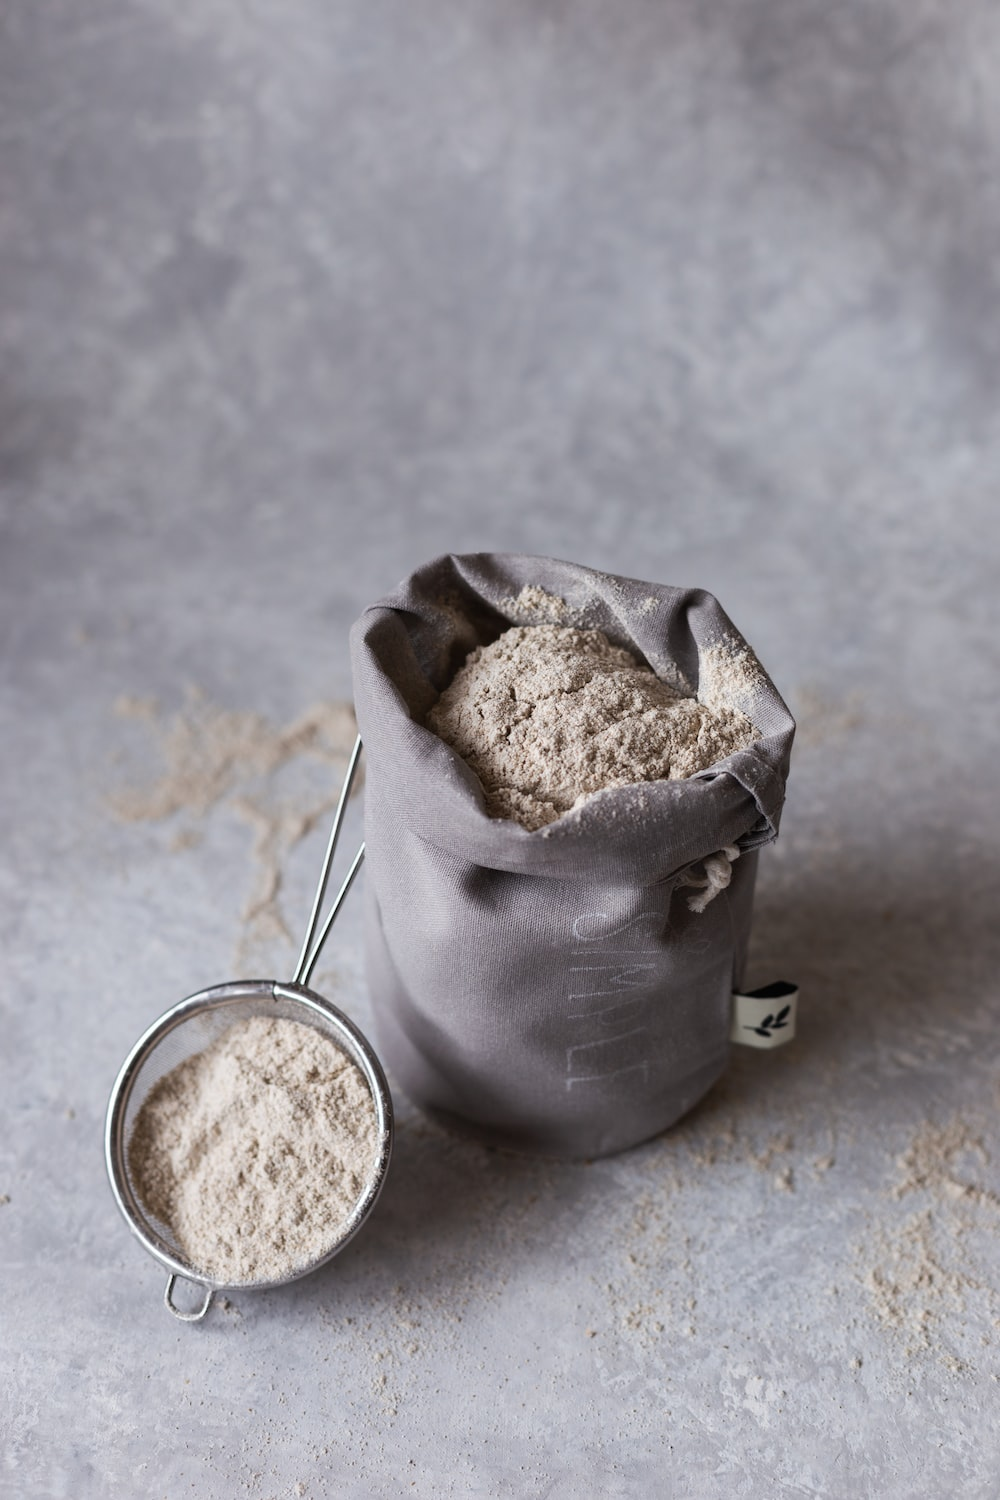 stainless steel cup with brown powder